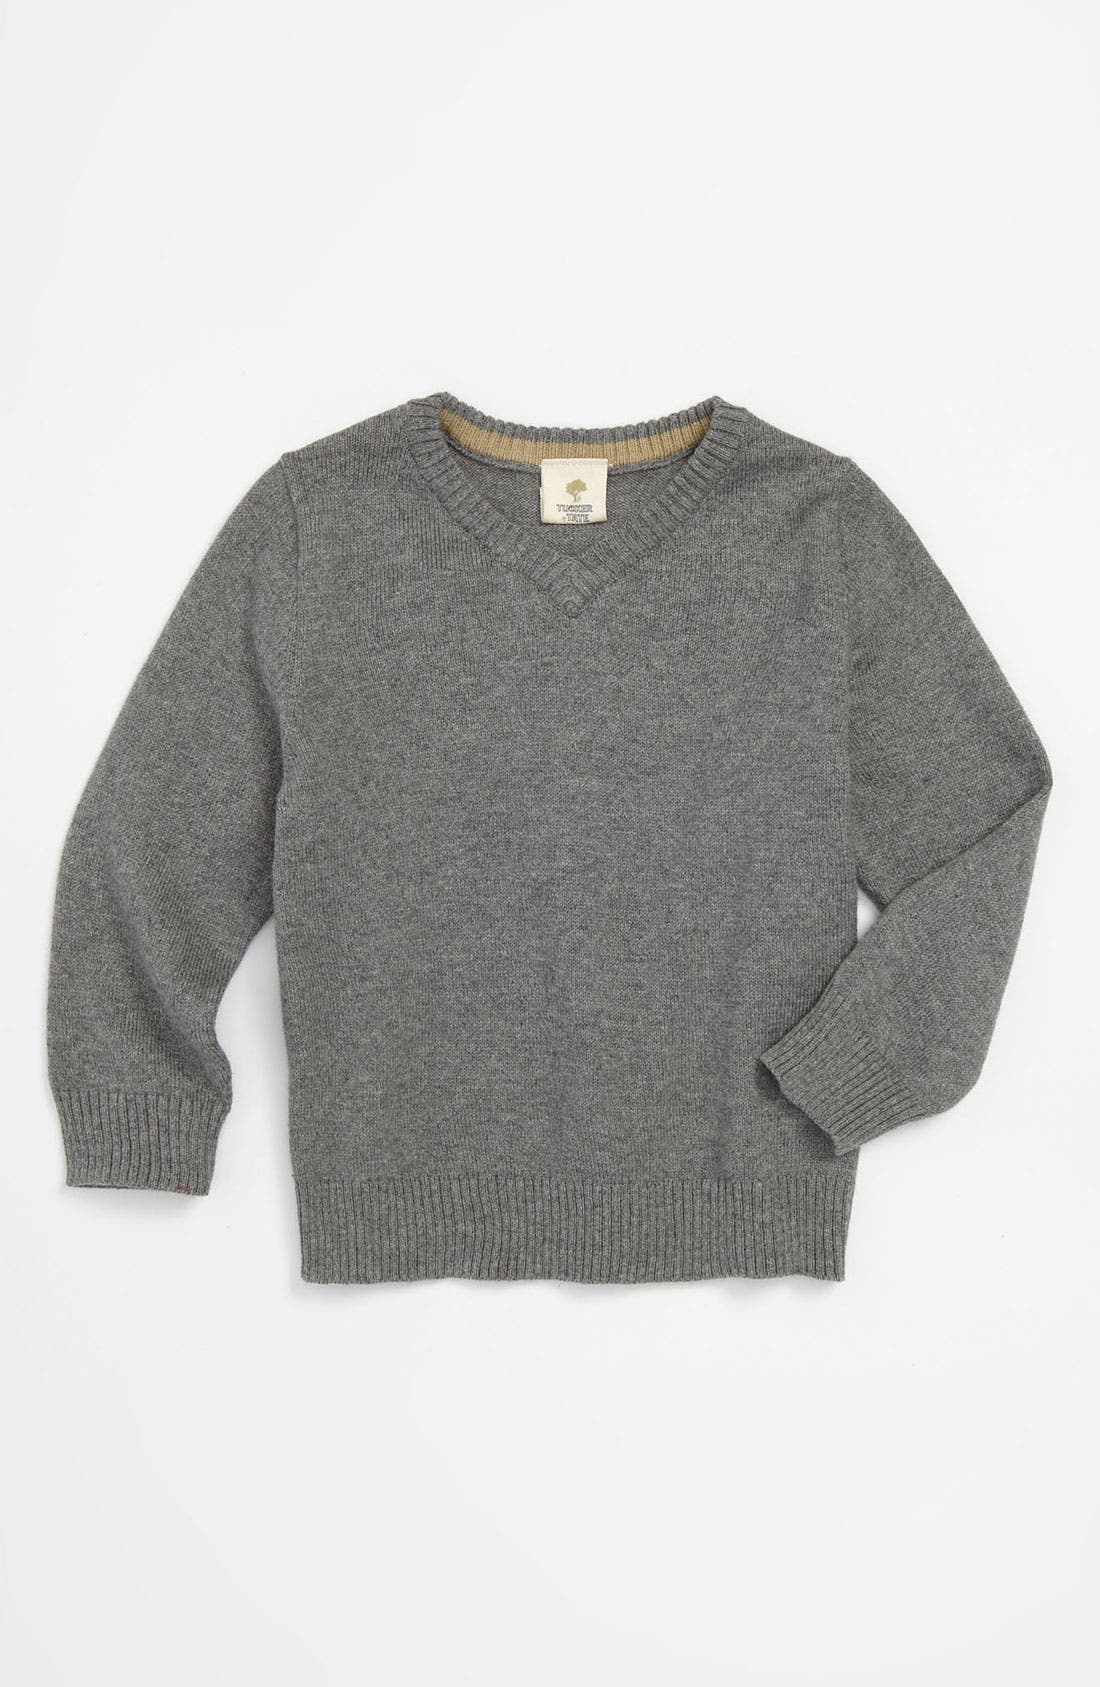 Alternate Image 1 Selected - Tucker + Tate 'Atticus' Sweater (Toddler)